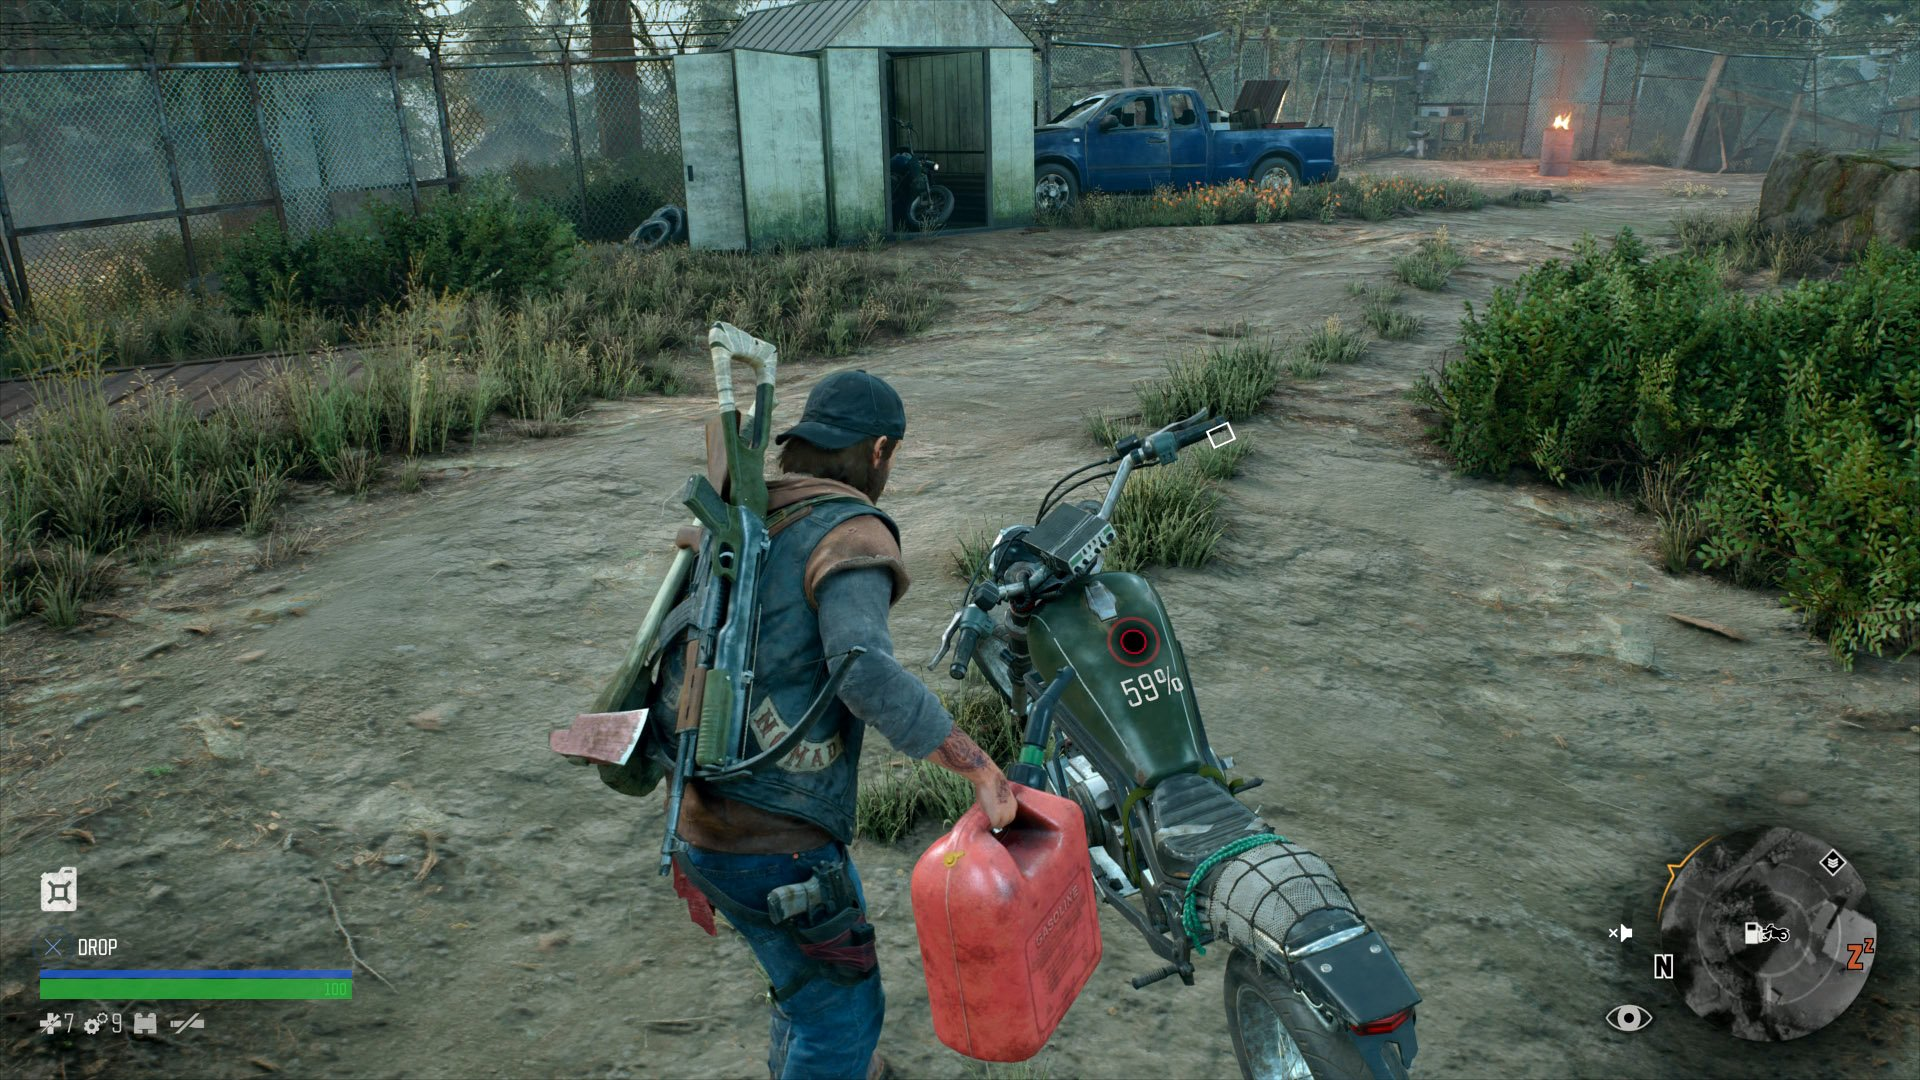 How to Refuel the Bike in Days Gone